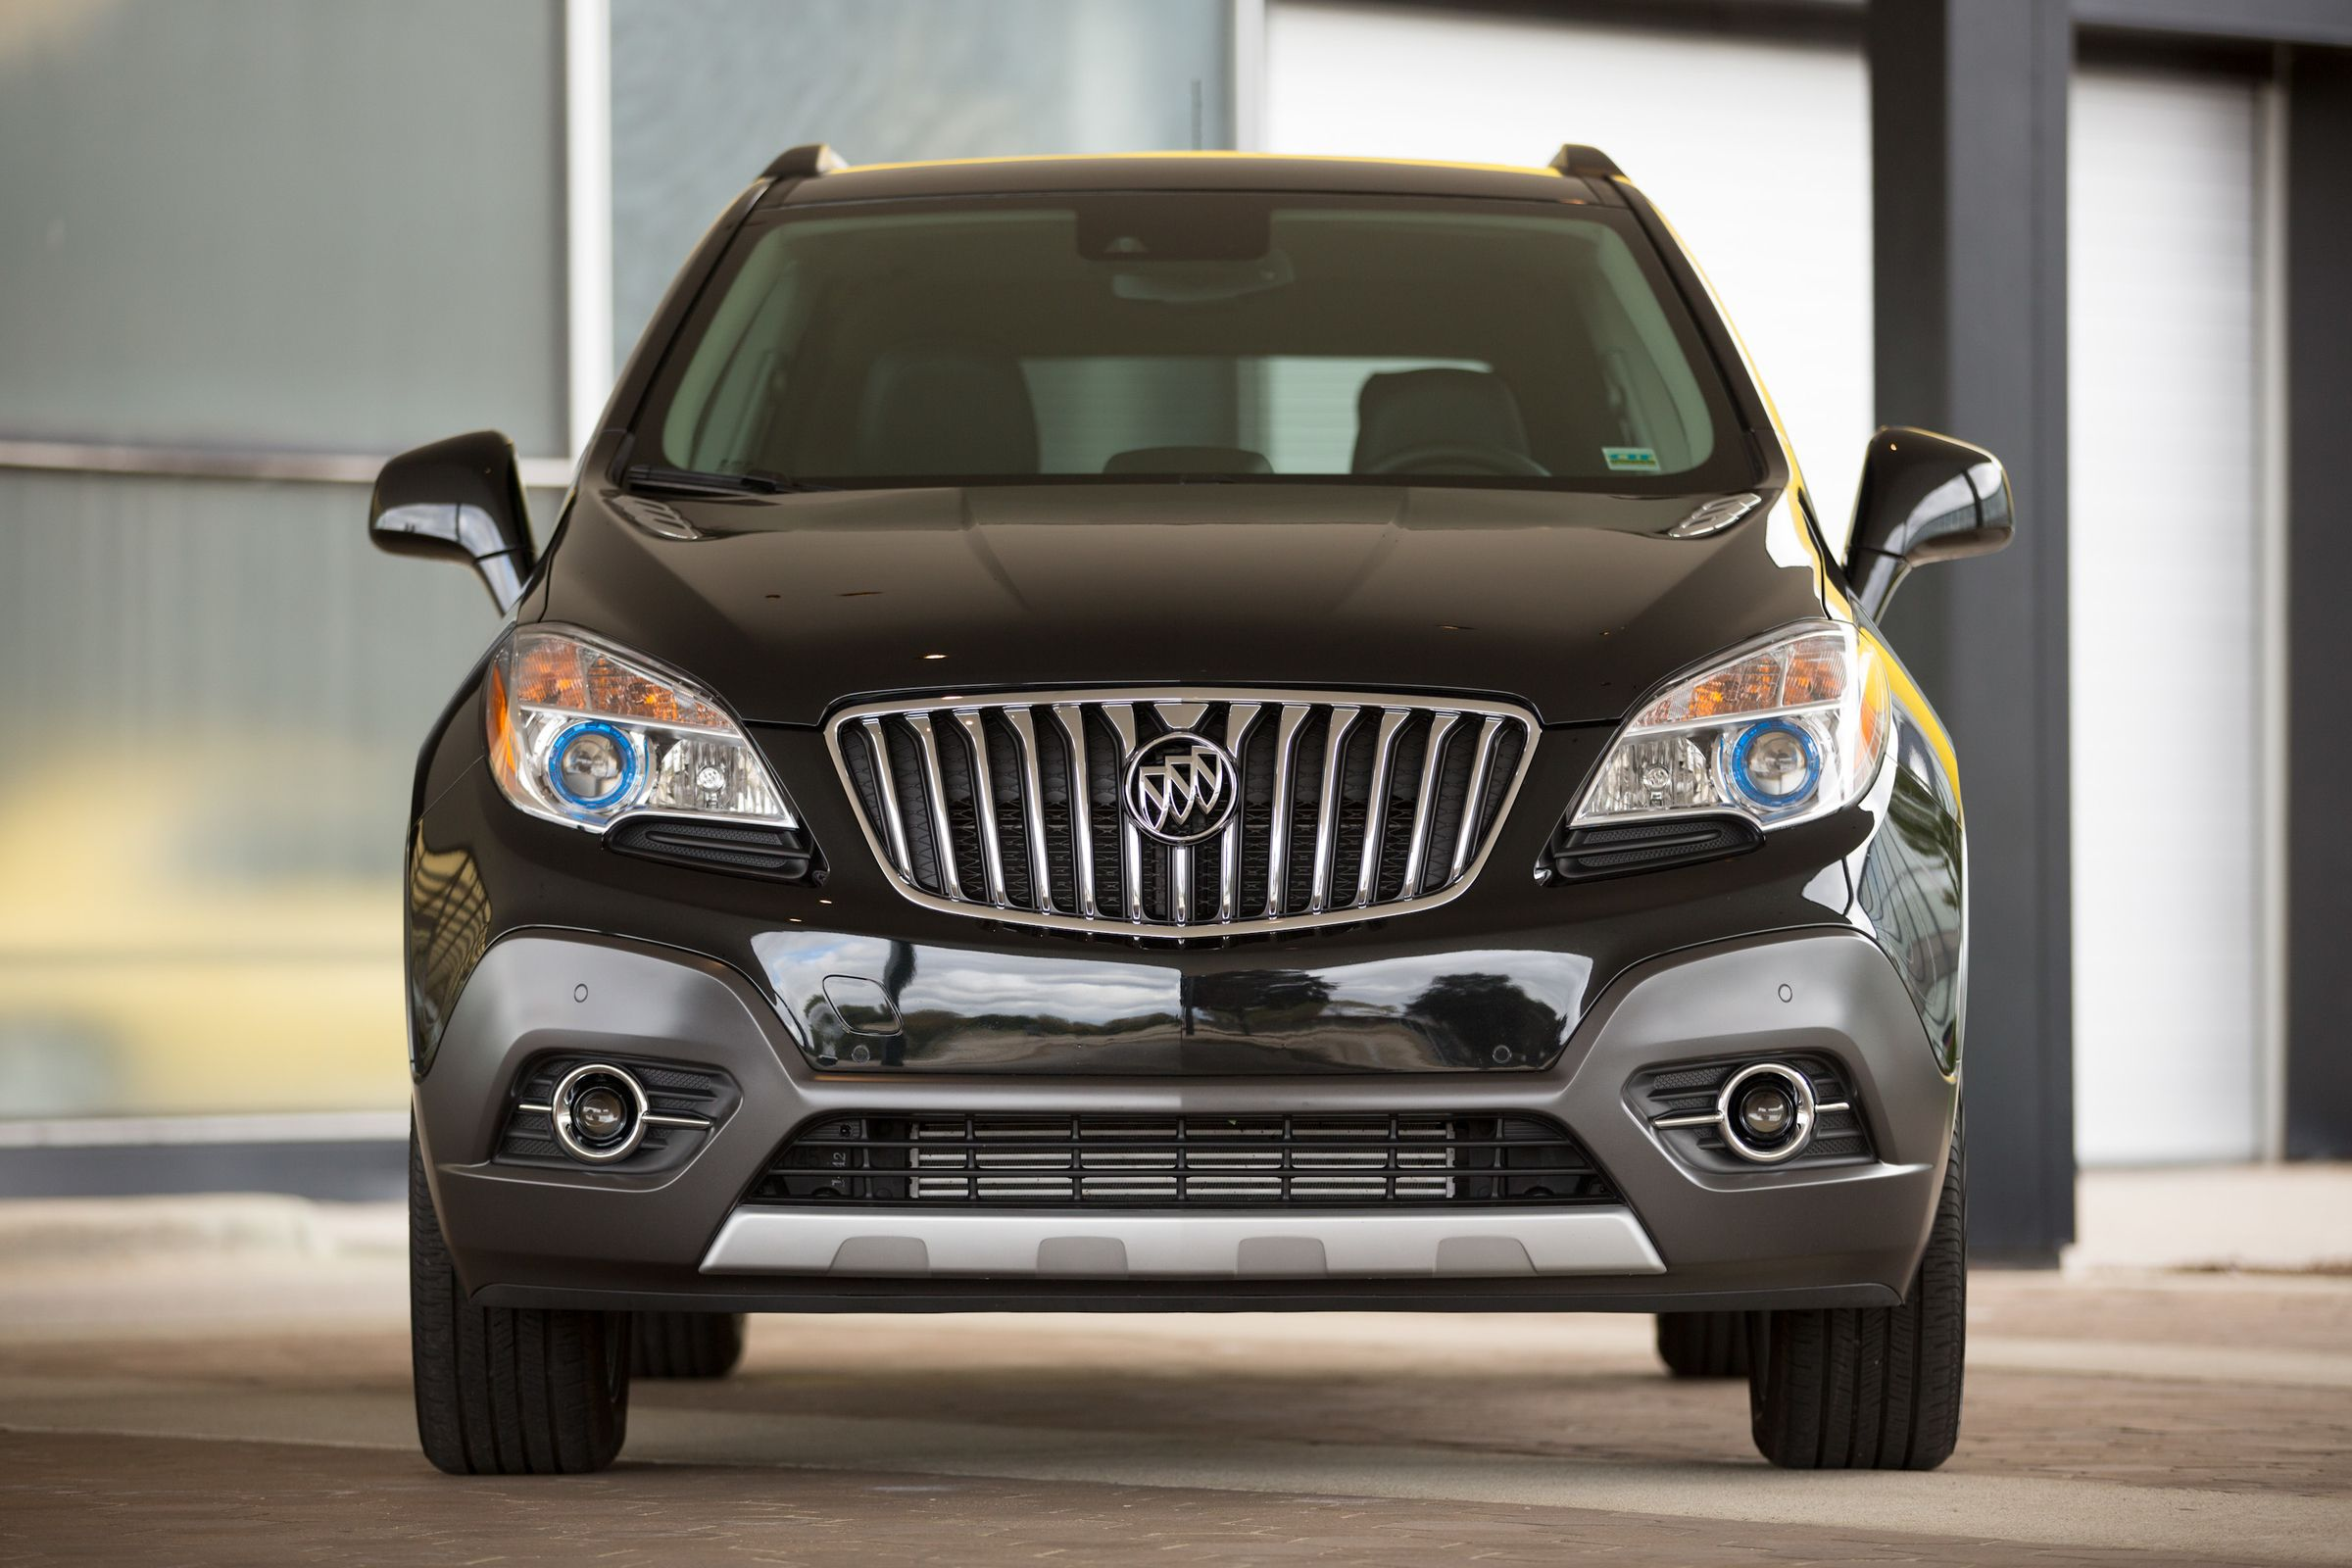 Designed to be as active, spontaneous, and agile as you are. 2013 Buick Encore #PinMyEncore